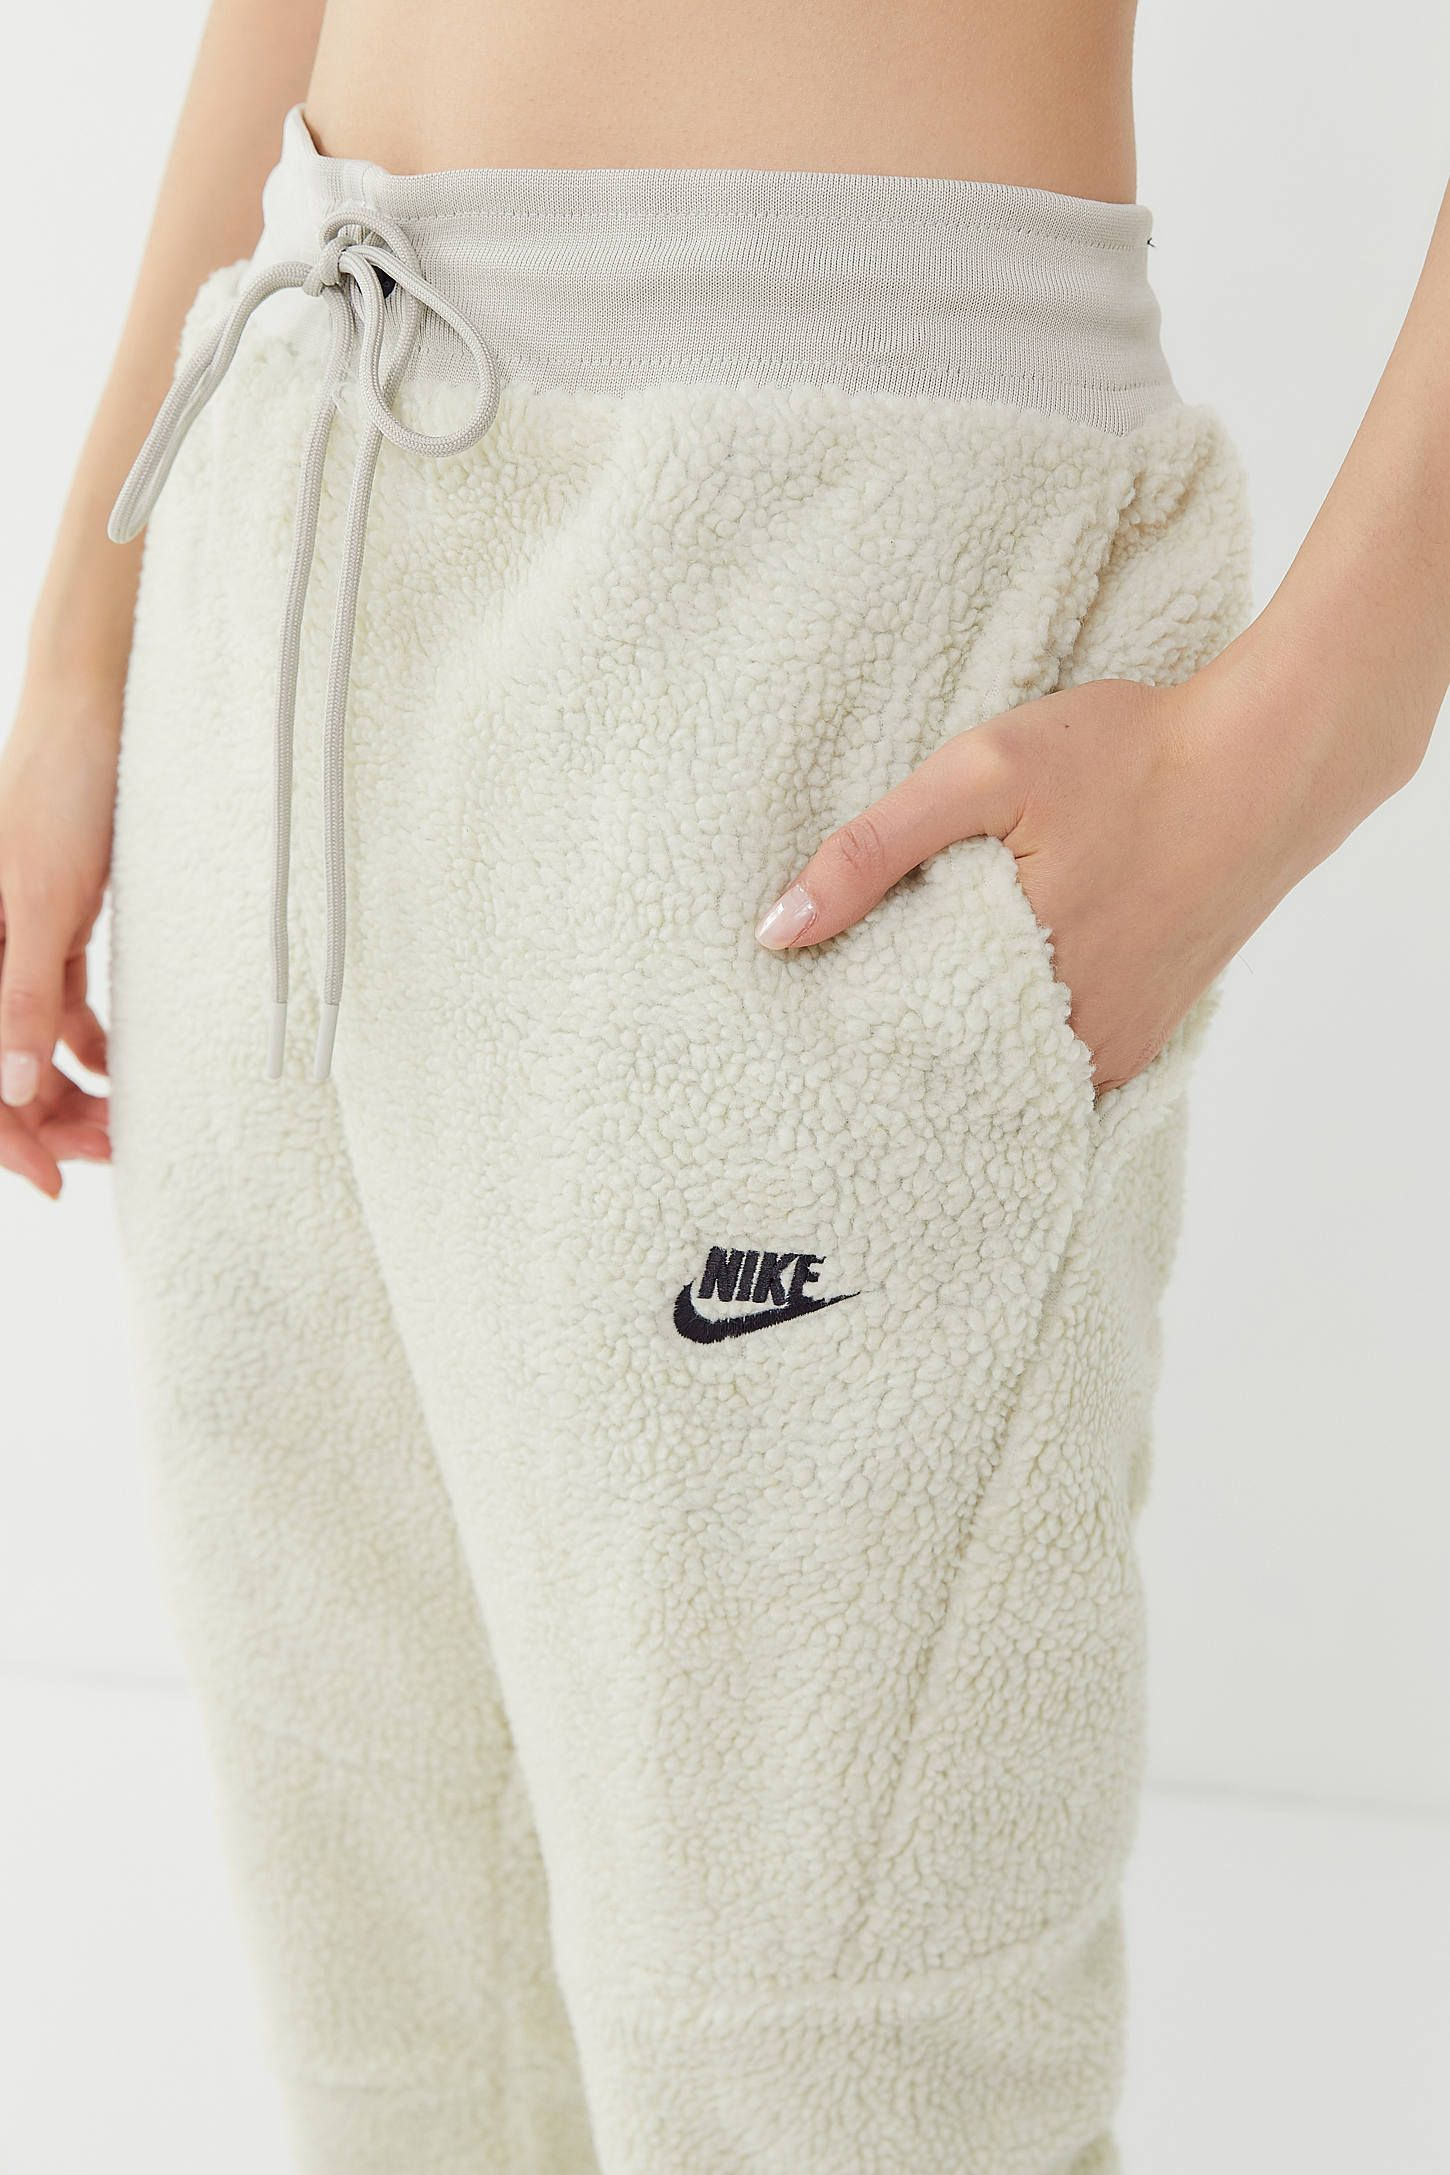 60c3285f0 Nike Air Sherpa Fleece Jogger Pant in 2019 | Clothes I Want | Fleece ...